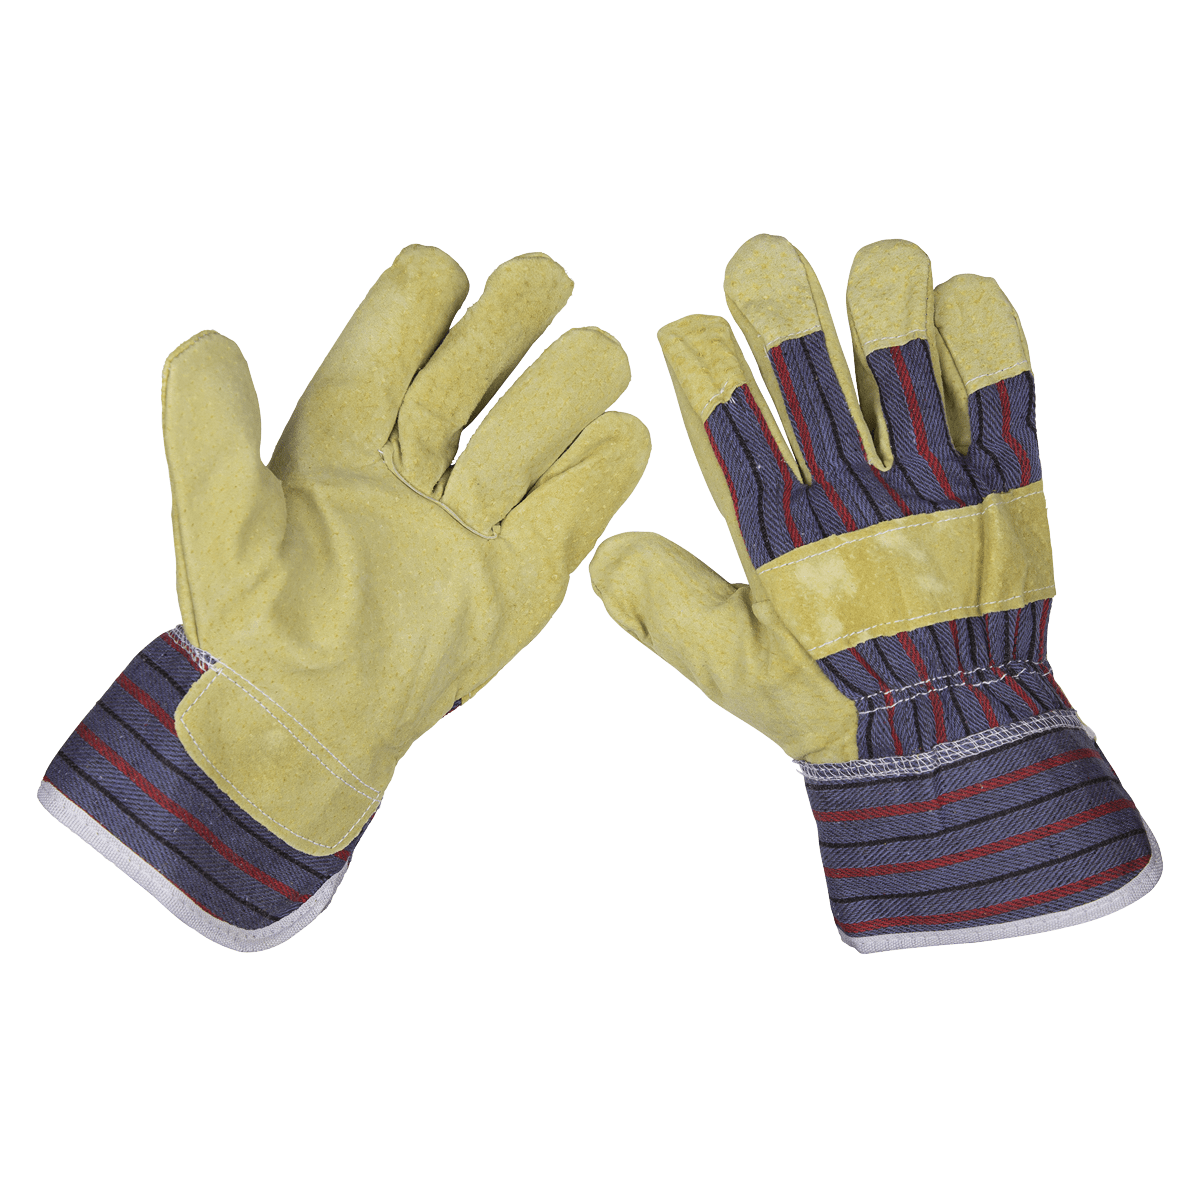 Sealey Rigger's Gloves Pair SSP12   Strong stitching, a generous fit and quality materials make this an ideal glove for general purpose trade use.   toolforce.ie